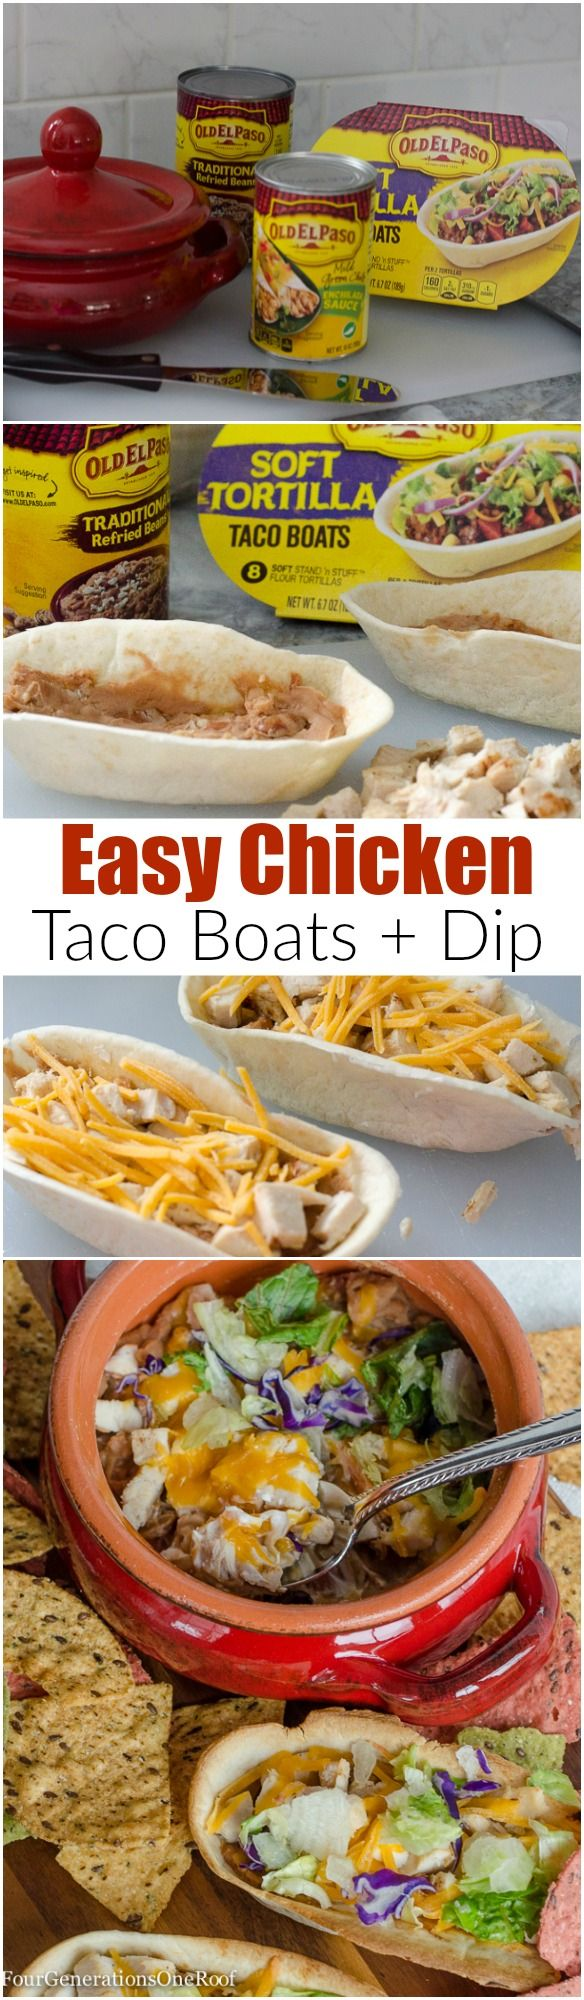 Mexican Chicken Taco Boats dip. Quick and easy recipe that is done in 8 minutes with a 10 minute prep time. Perfect for game day!